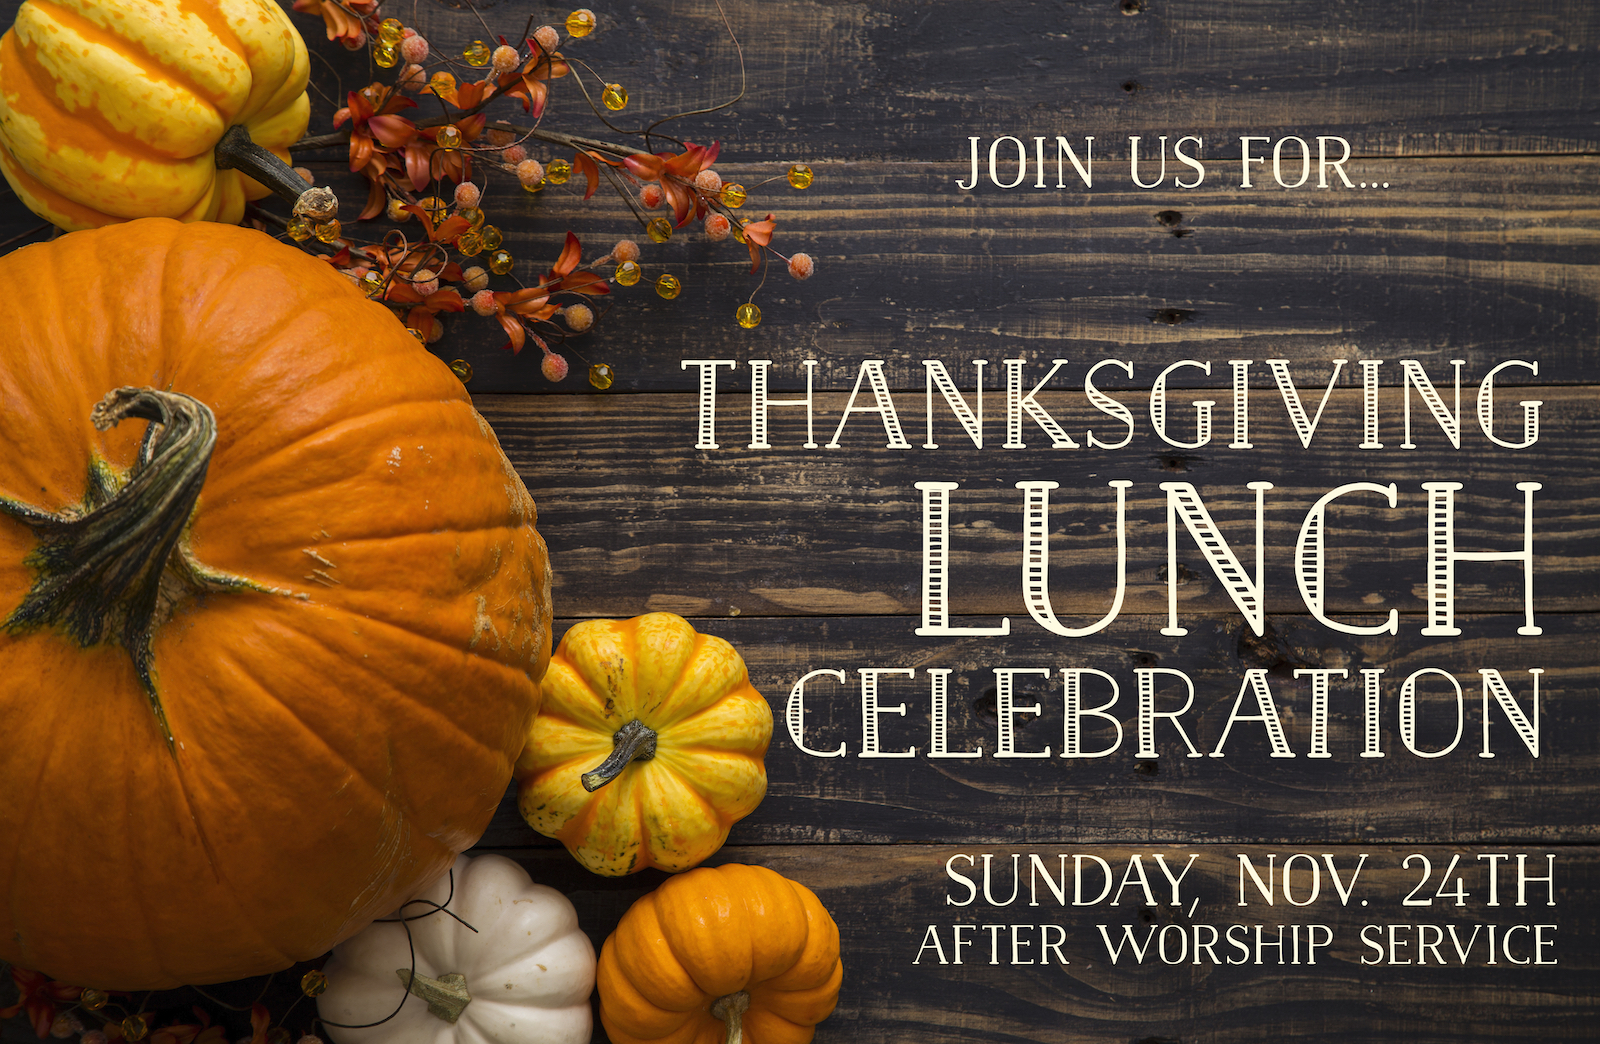 Thanksgiving Celebration 2019 Announcement Slide (1) image